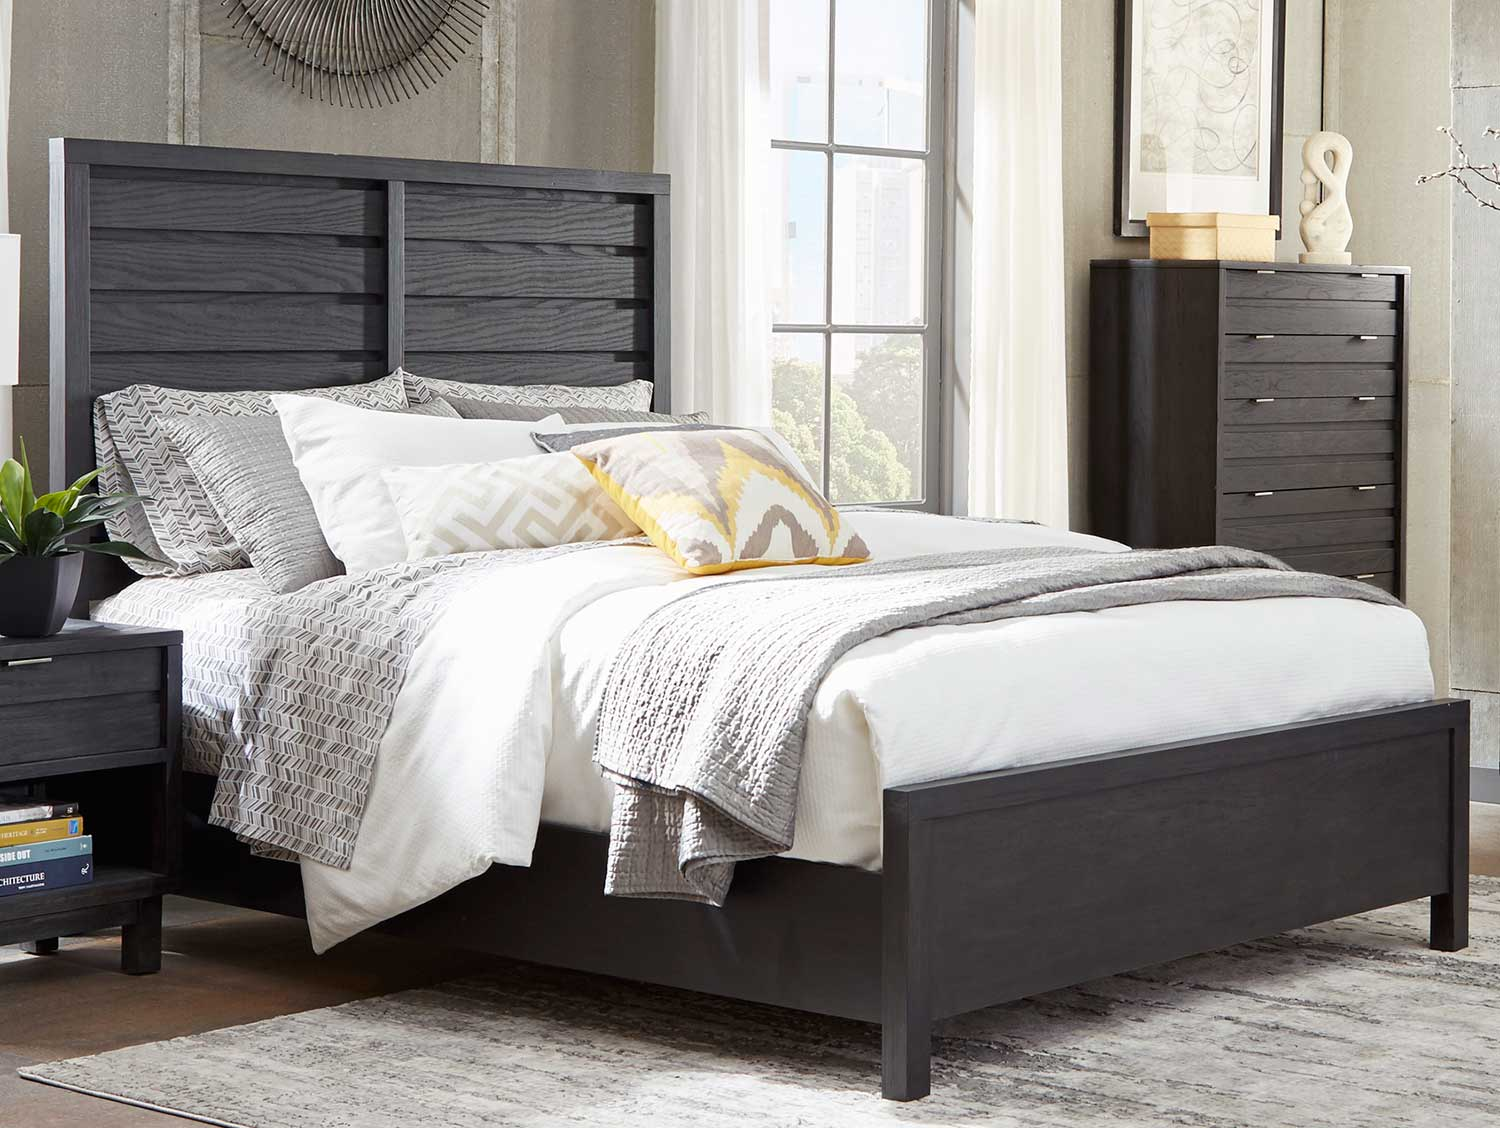 Homelegance Robindell Bed - Ebony